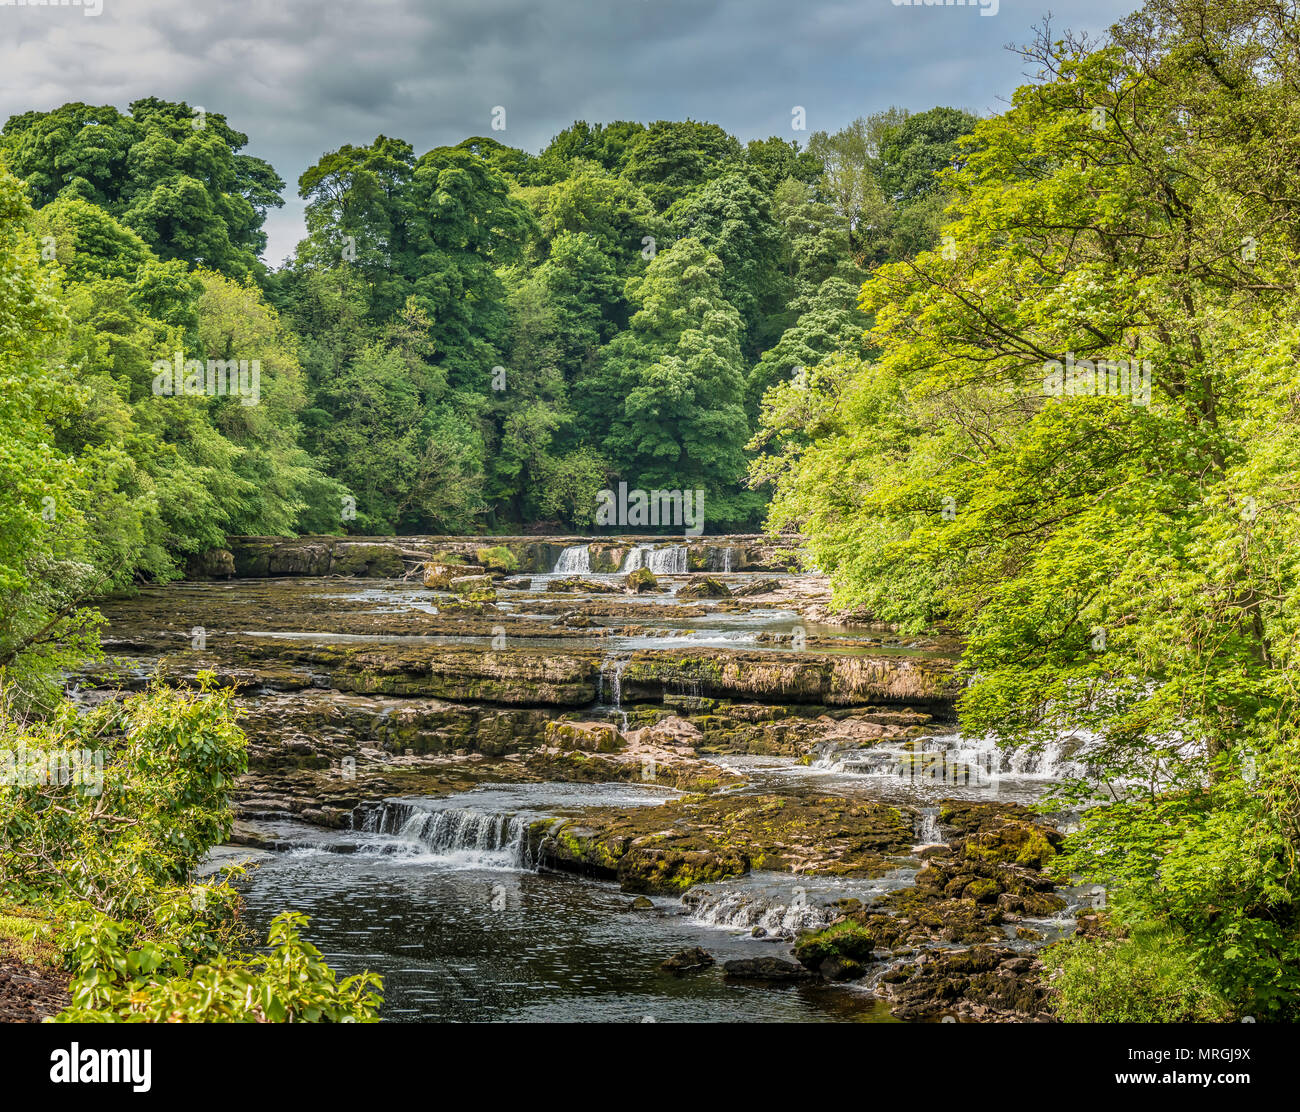 Upper Falls, Aysgarth, Wensleydale, Yorkshire Dales National Park, UK in late spring with very low water level Stock Photo